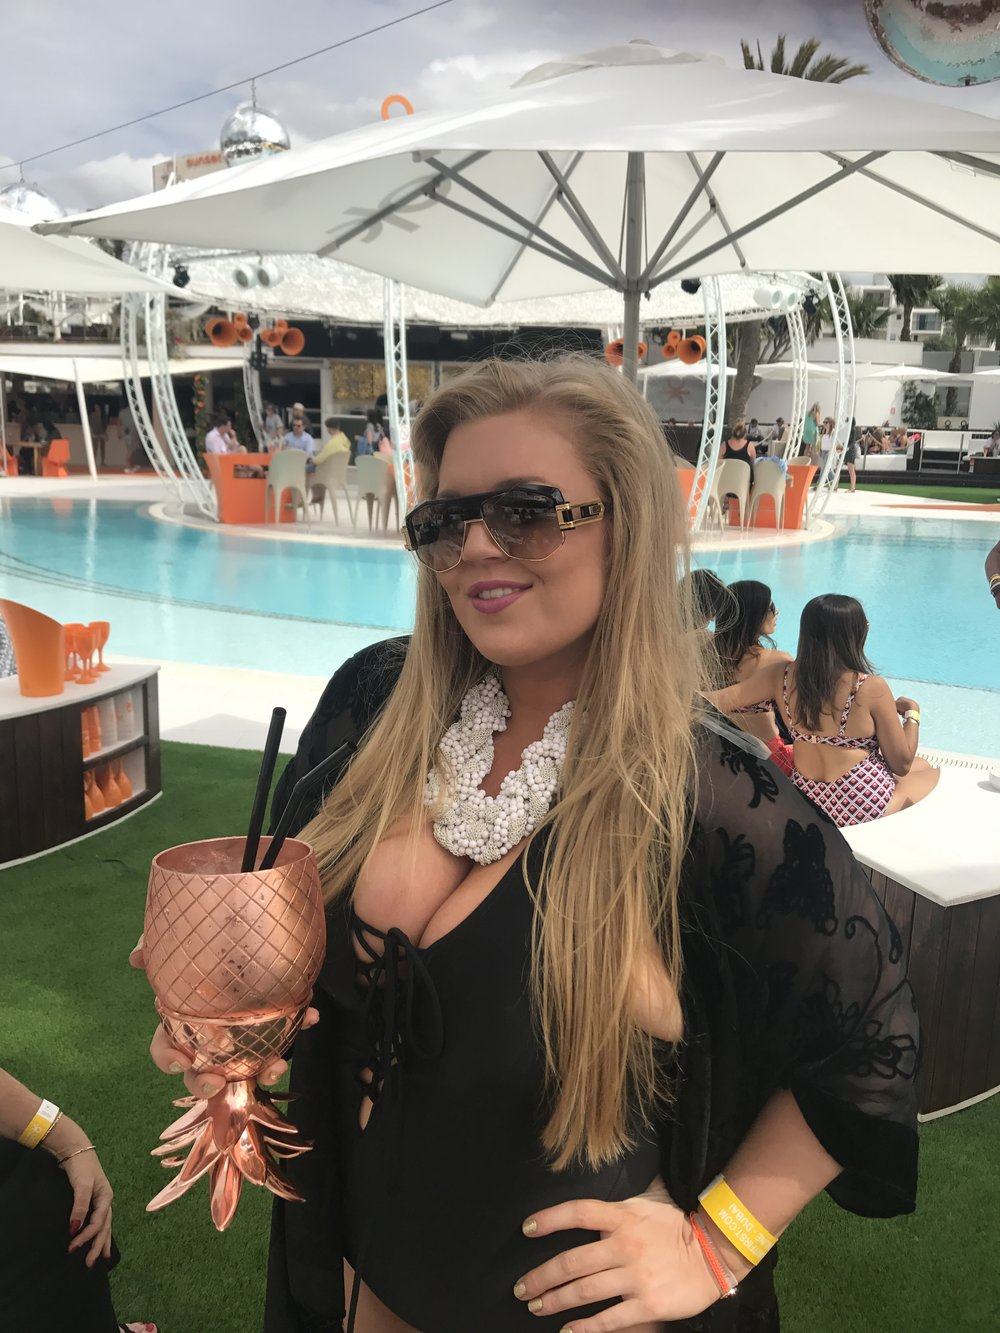 what_to_Wear_in_ibiza_simply_be_swimsuit_for_women_with_curves_boobs_ibiza_evissa_ocean_beach_ibiza_elle_blonde_luxury_lifestyle_blog-1